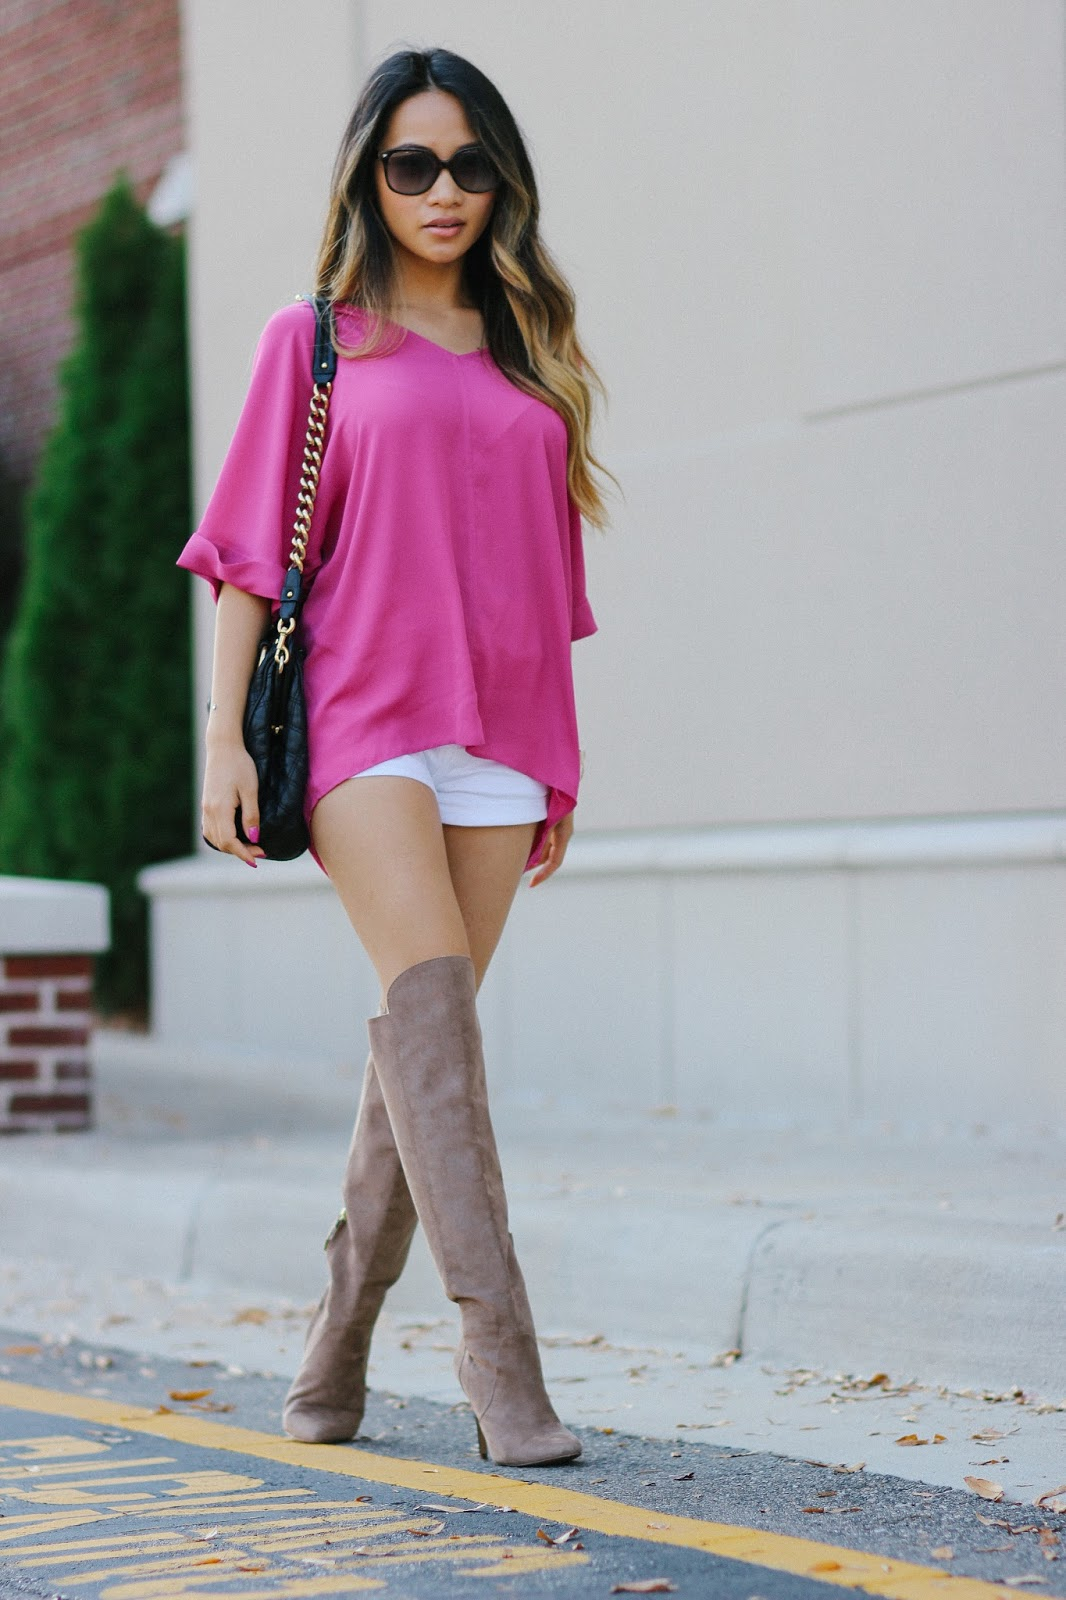 Marc jacobs stam bag, forever21 taupe knee high boots, knee high boots, taupe knee high boots, fall outfit, vietnamese fashion blogger, thigh high boots, express shorts,